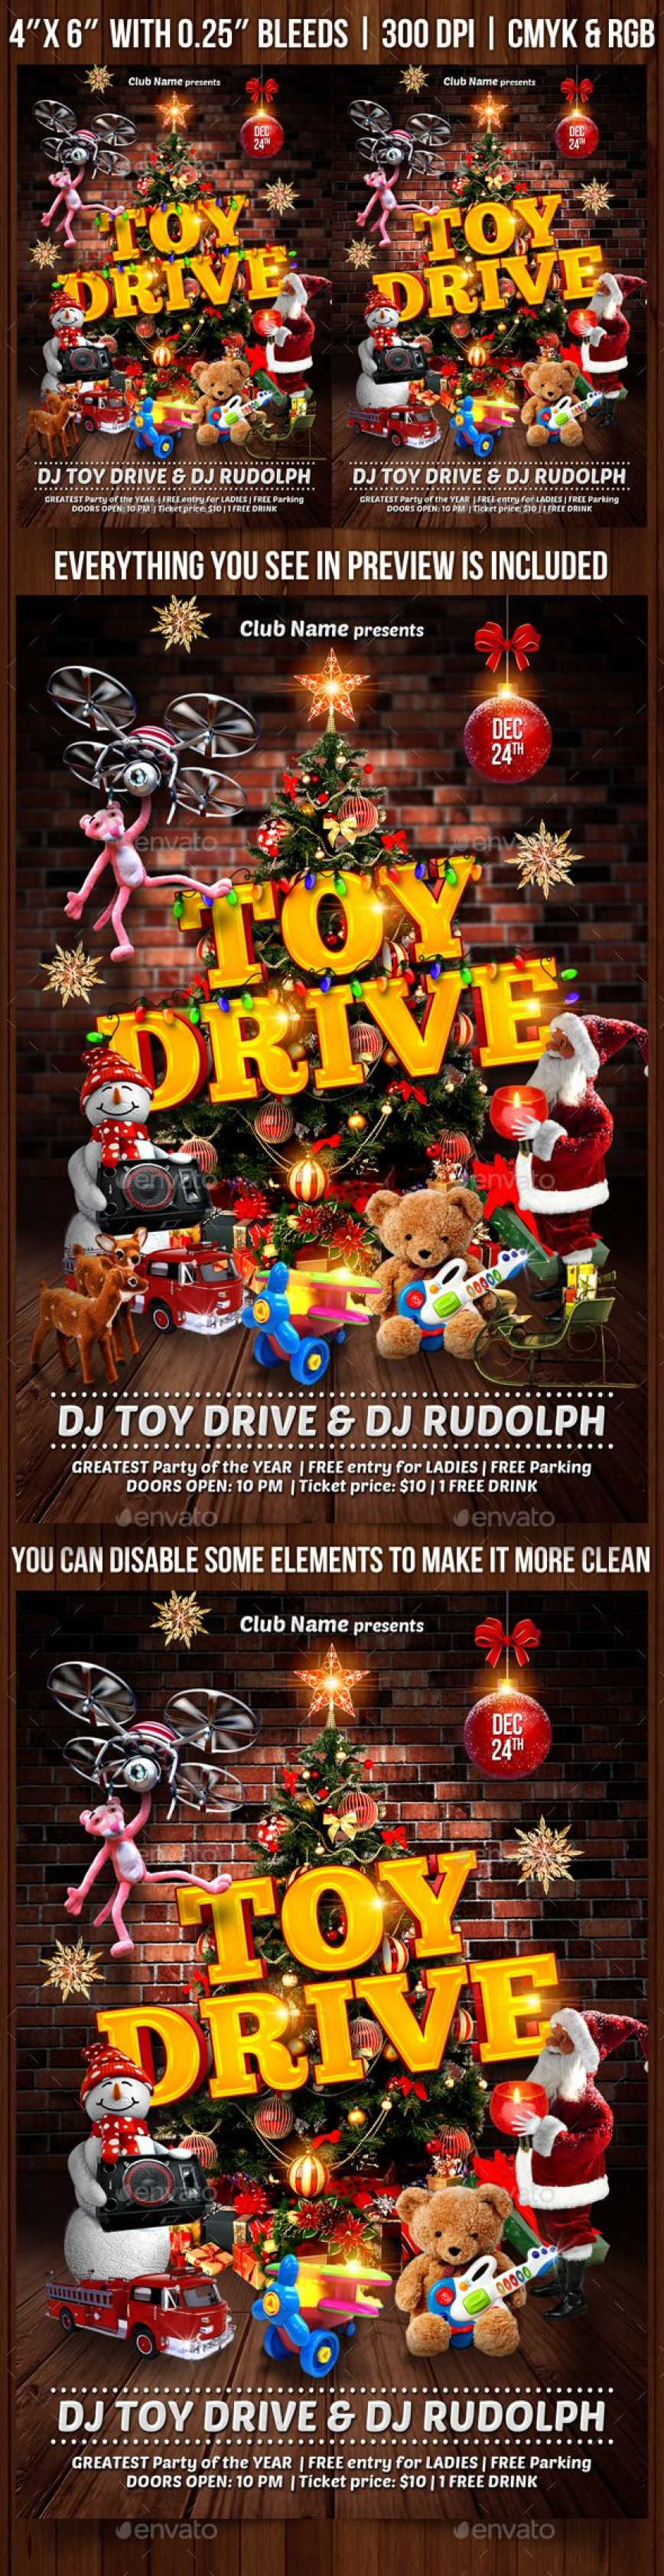 008 Frightening Toy Drive Flyer Template Highest Clarity  Christma Free Download